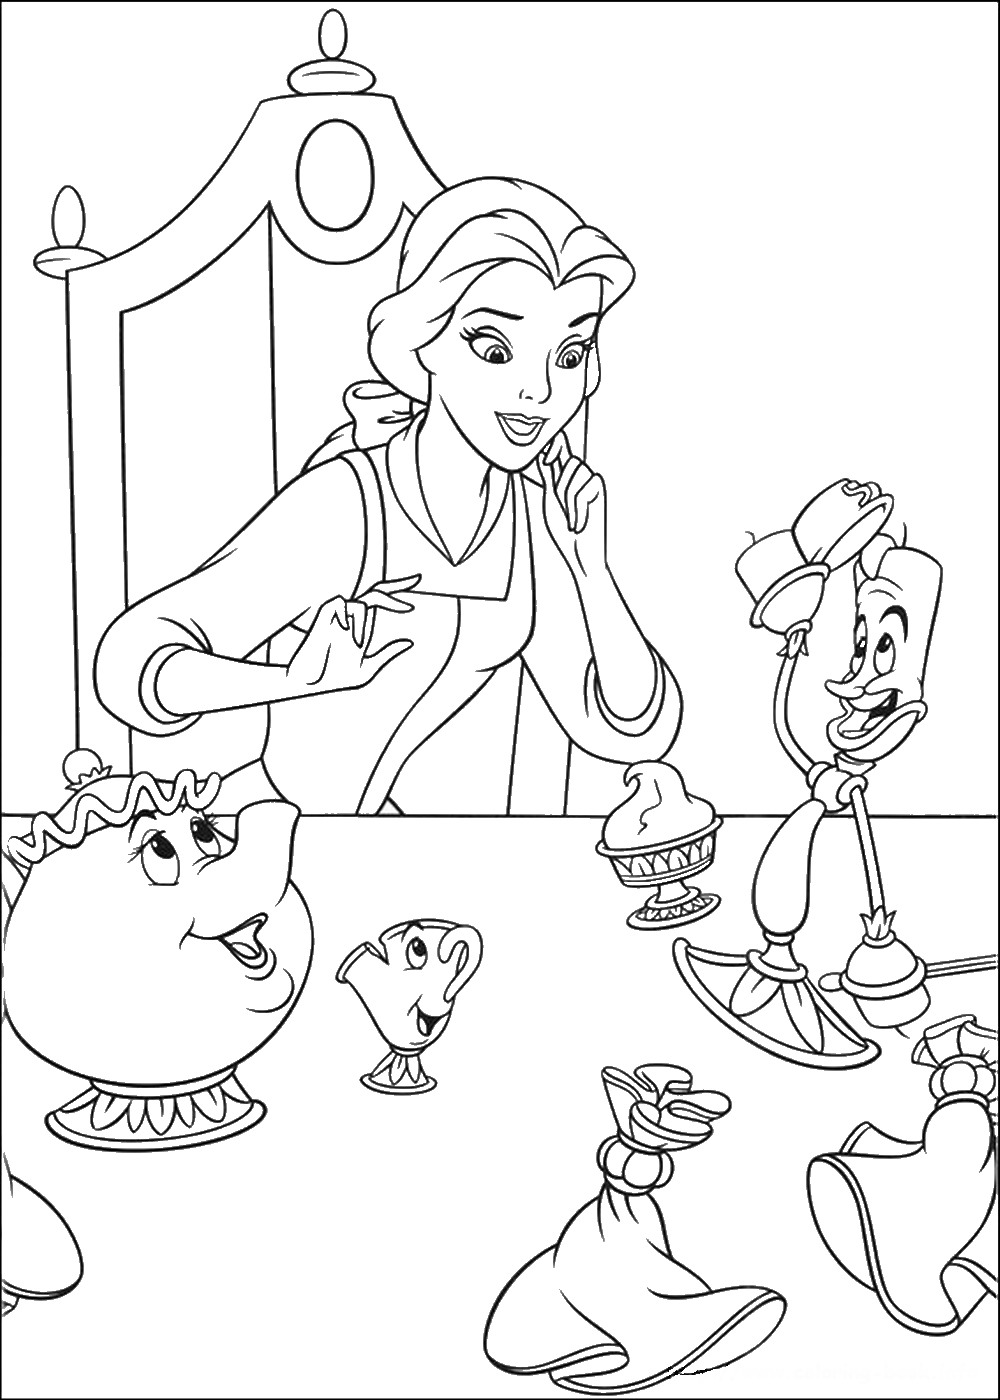 beauty and the beast colouring page beauty and beast coloring page 14 coloringcolorcom beauty page the beast and colouring